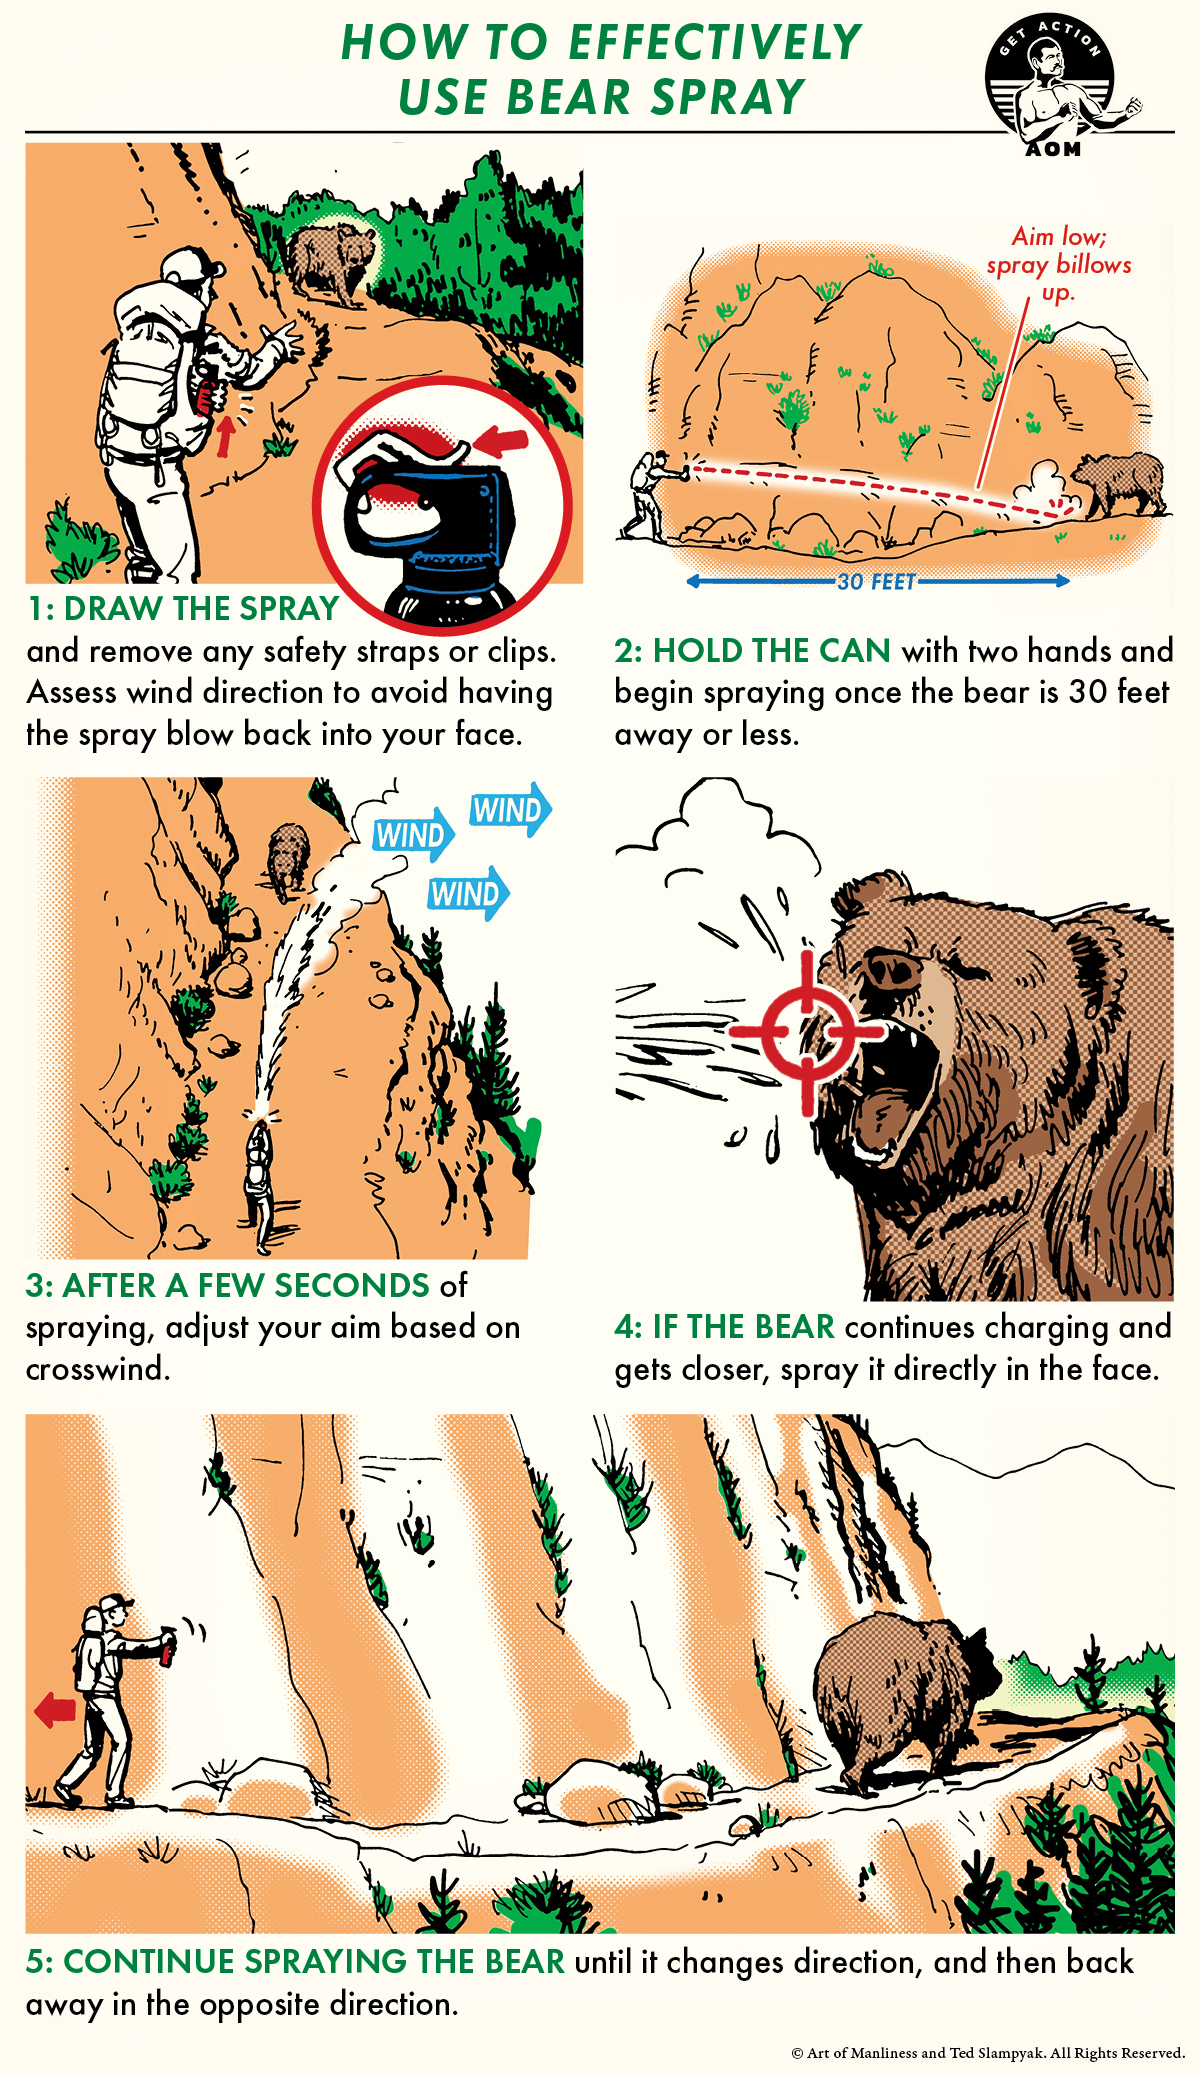 Comic show how to use bear spray effectively.